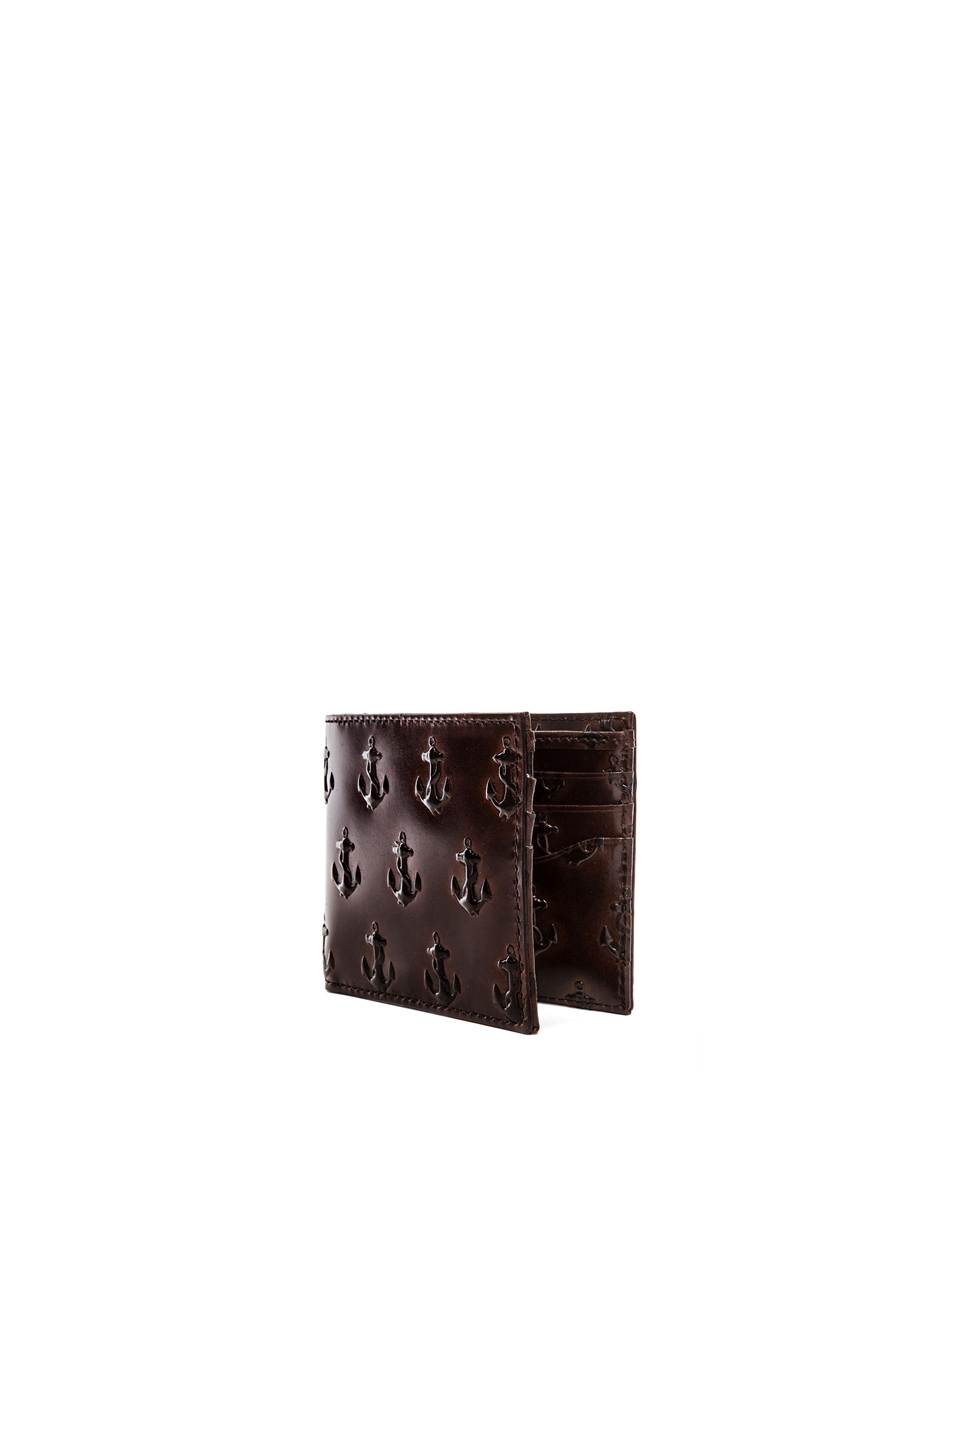 Jack Spade Jack Spade Embossed Anchor Bill Holder Wallet in Brown